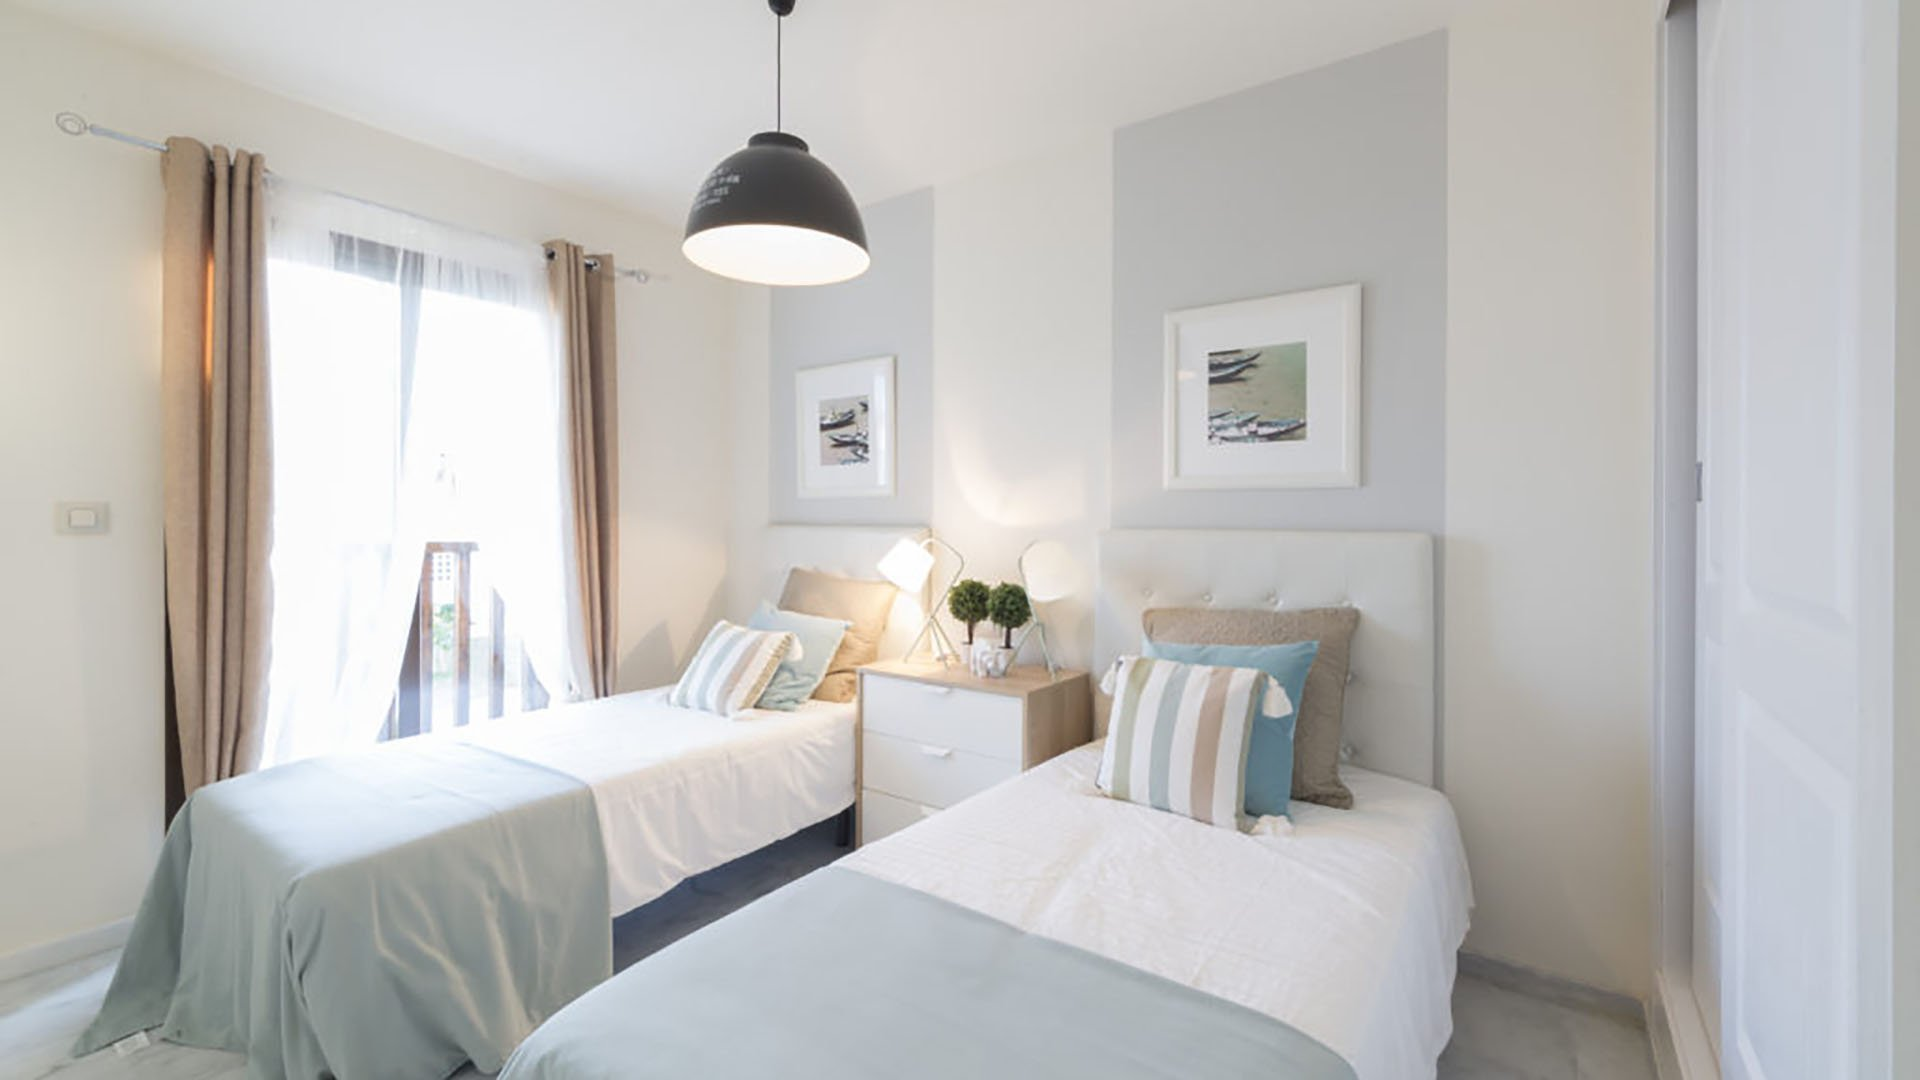 Golf and Beach:  Frontline golf apartments only 5 min away from the beach